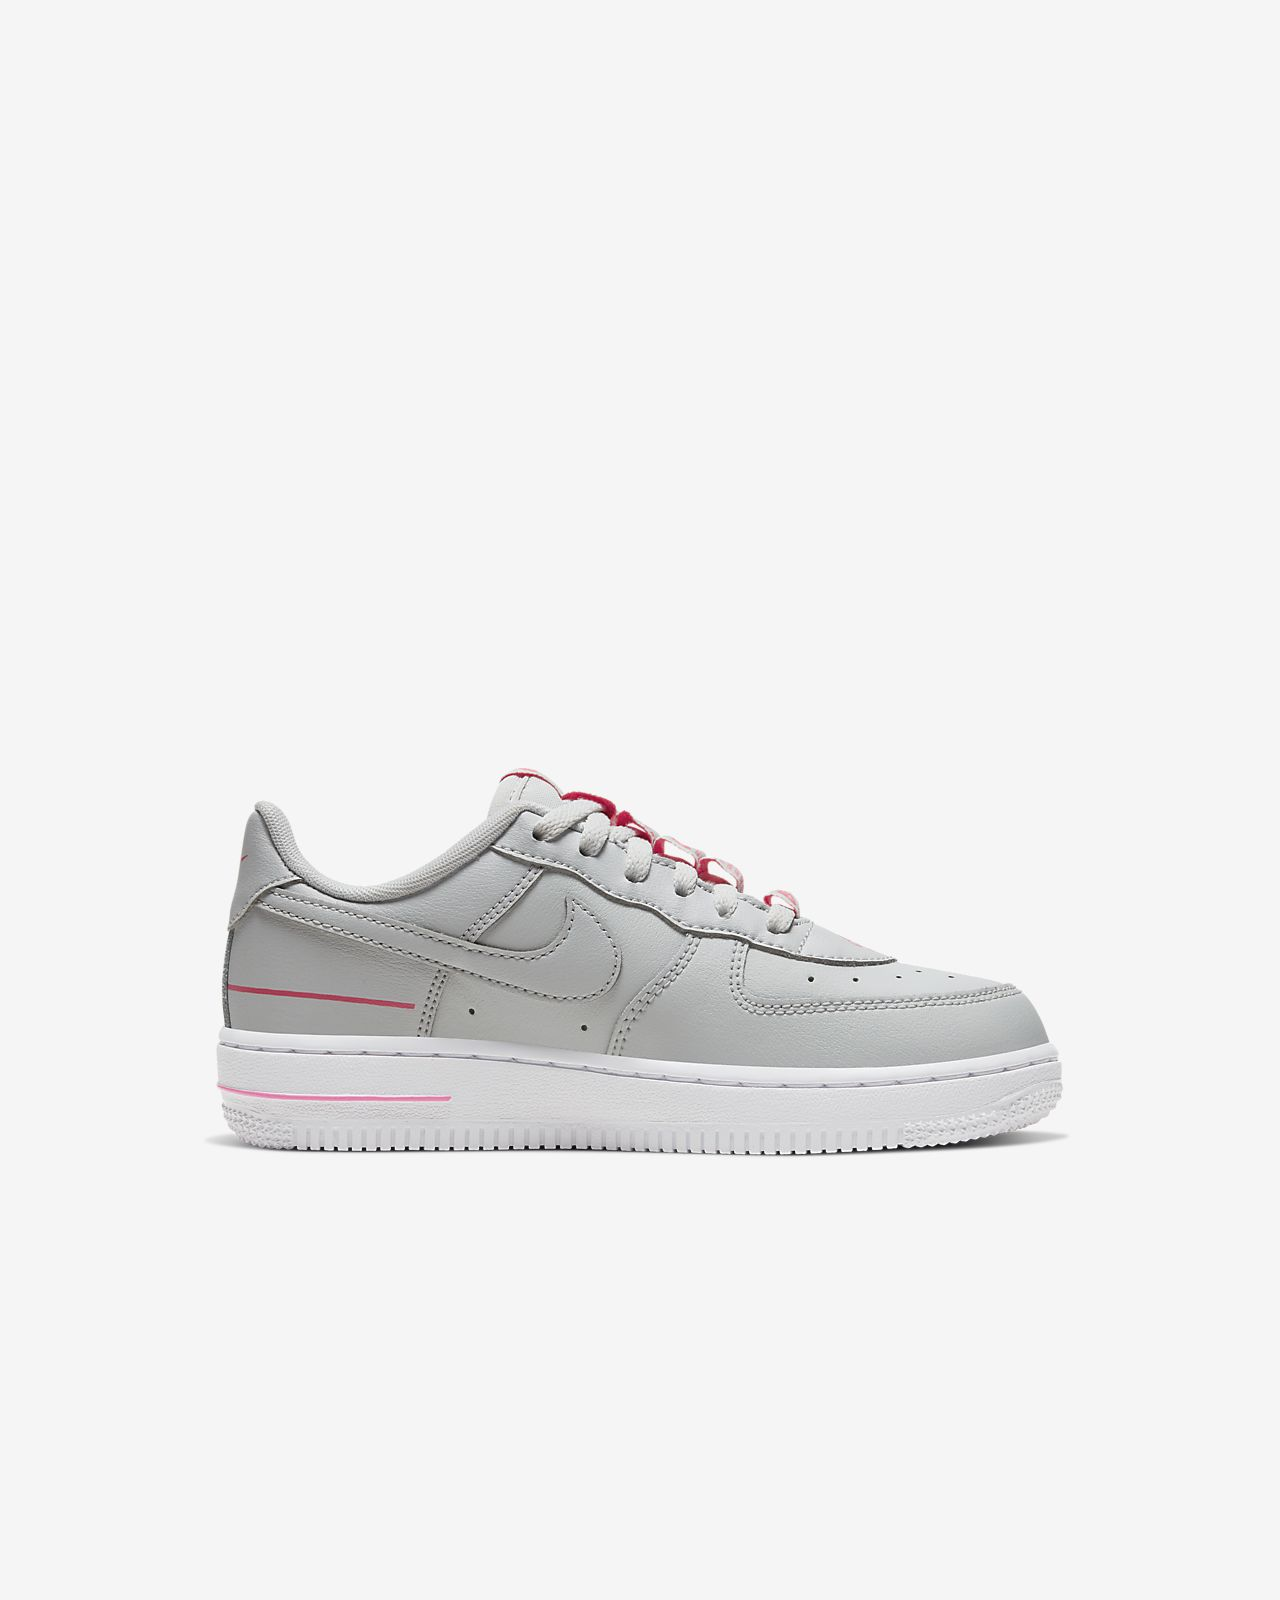 Nike Air Force 1 LV8 3 Photon Dust Pink   CJ4092 002 in 2020